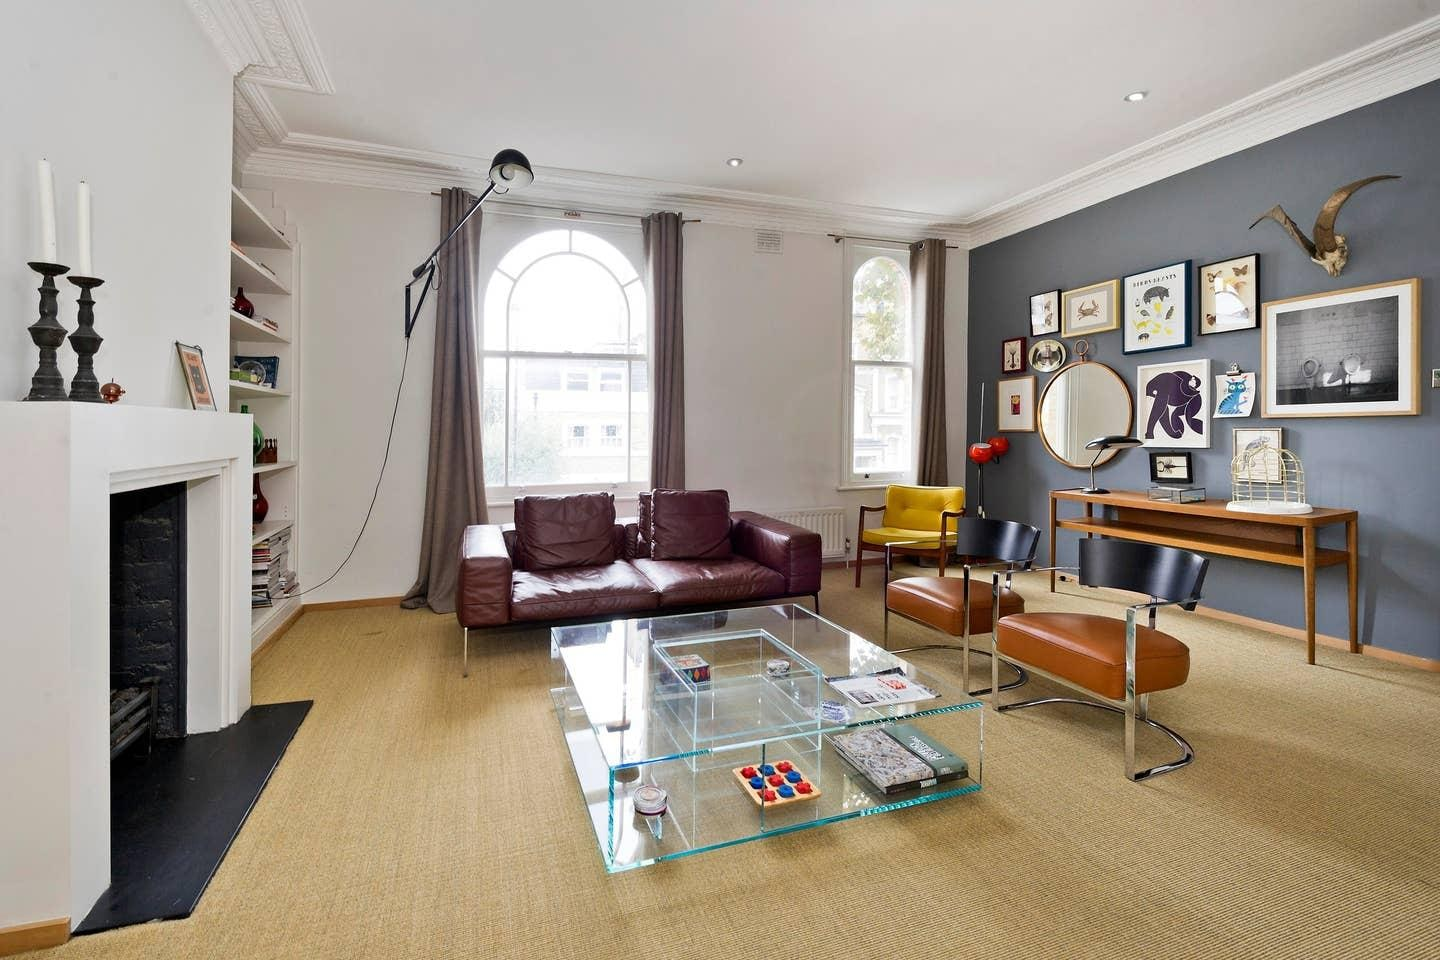 Property Image 1 - Modern Chelsea Apartment with Italian Influences